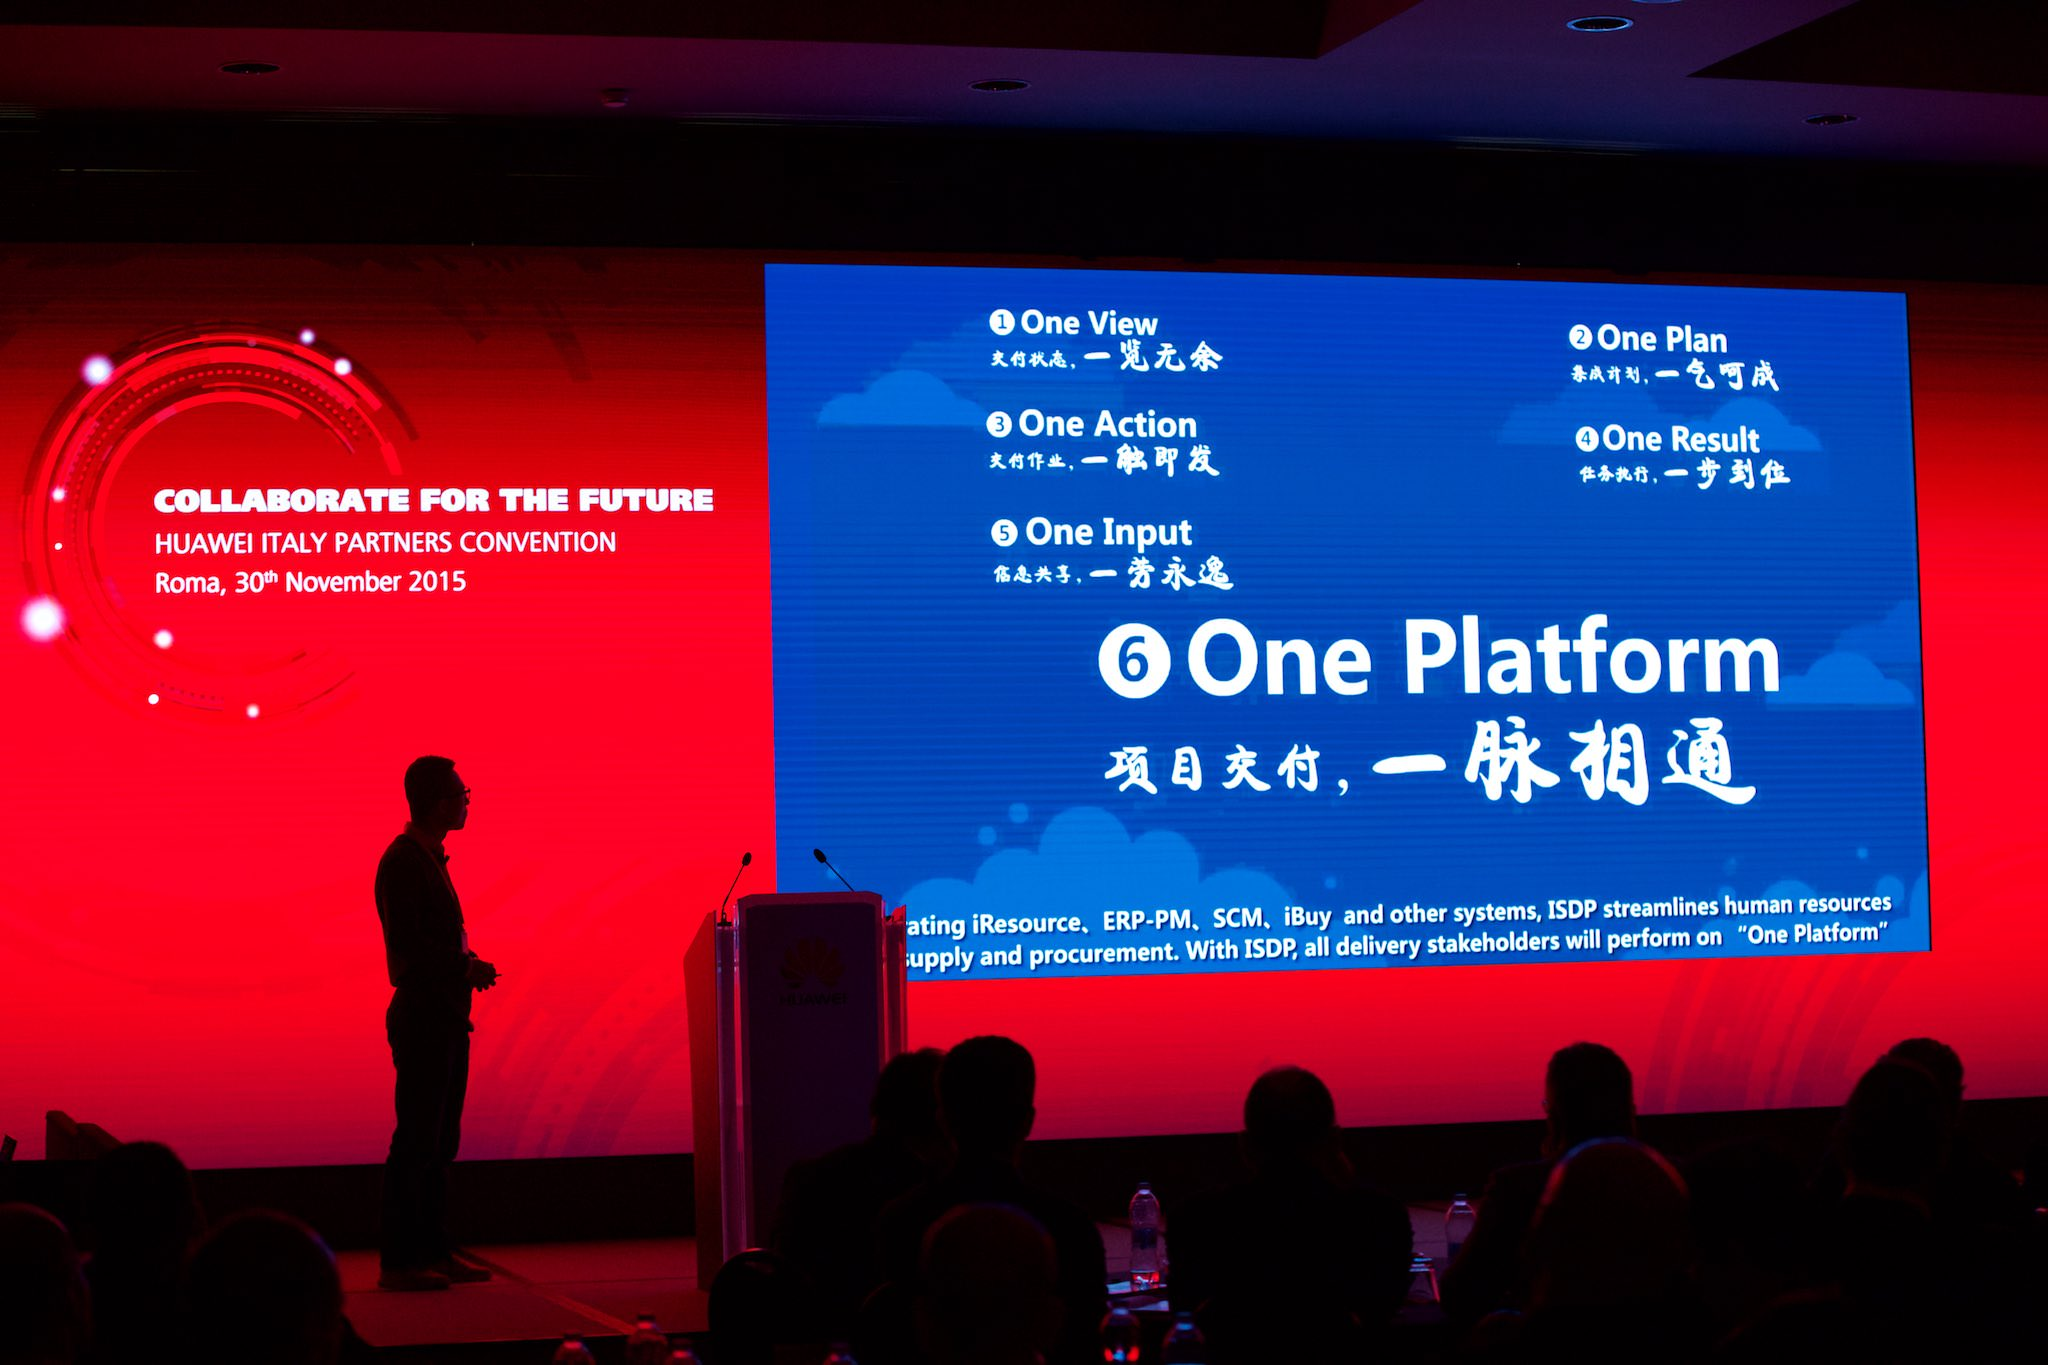 HUAWEI ITALY PARTNER CONVENTION (17)